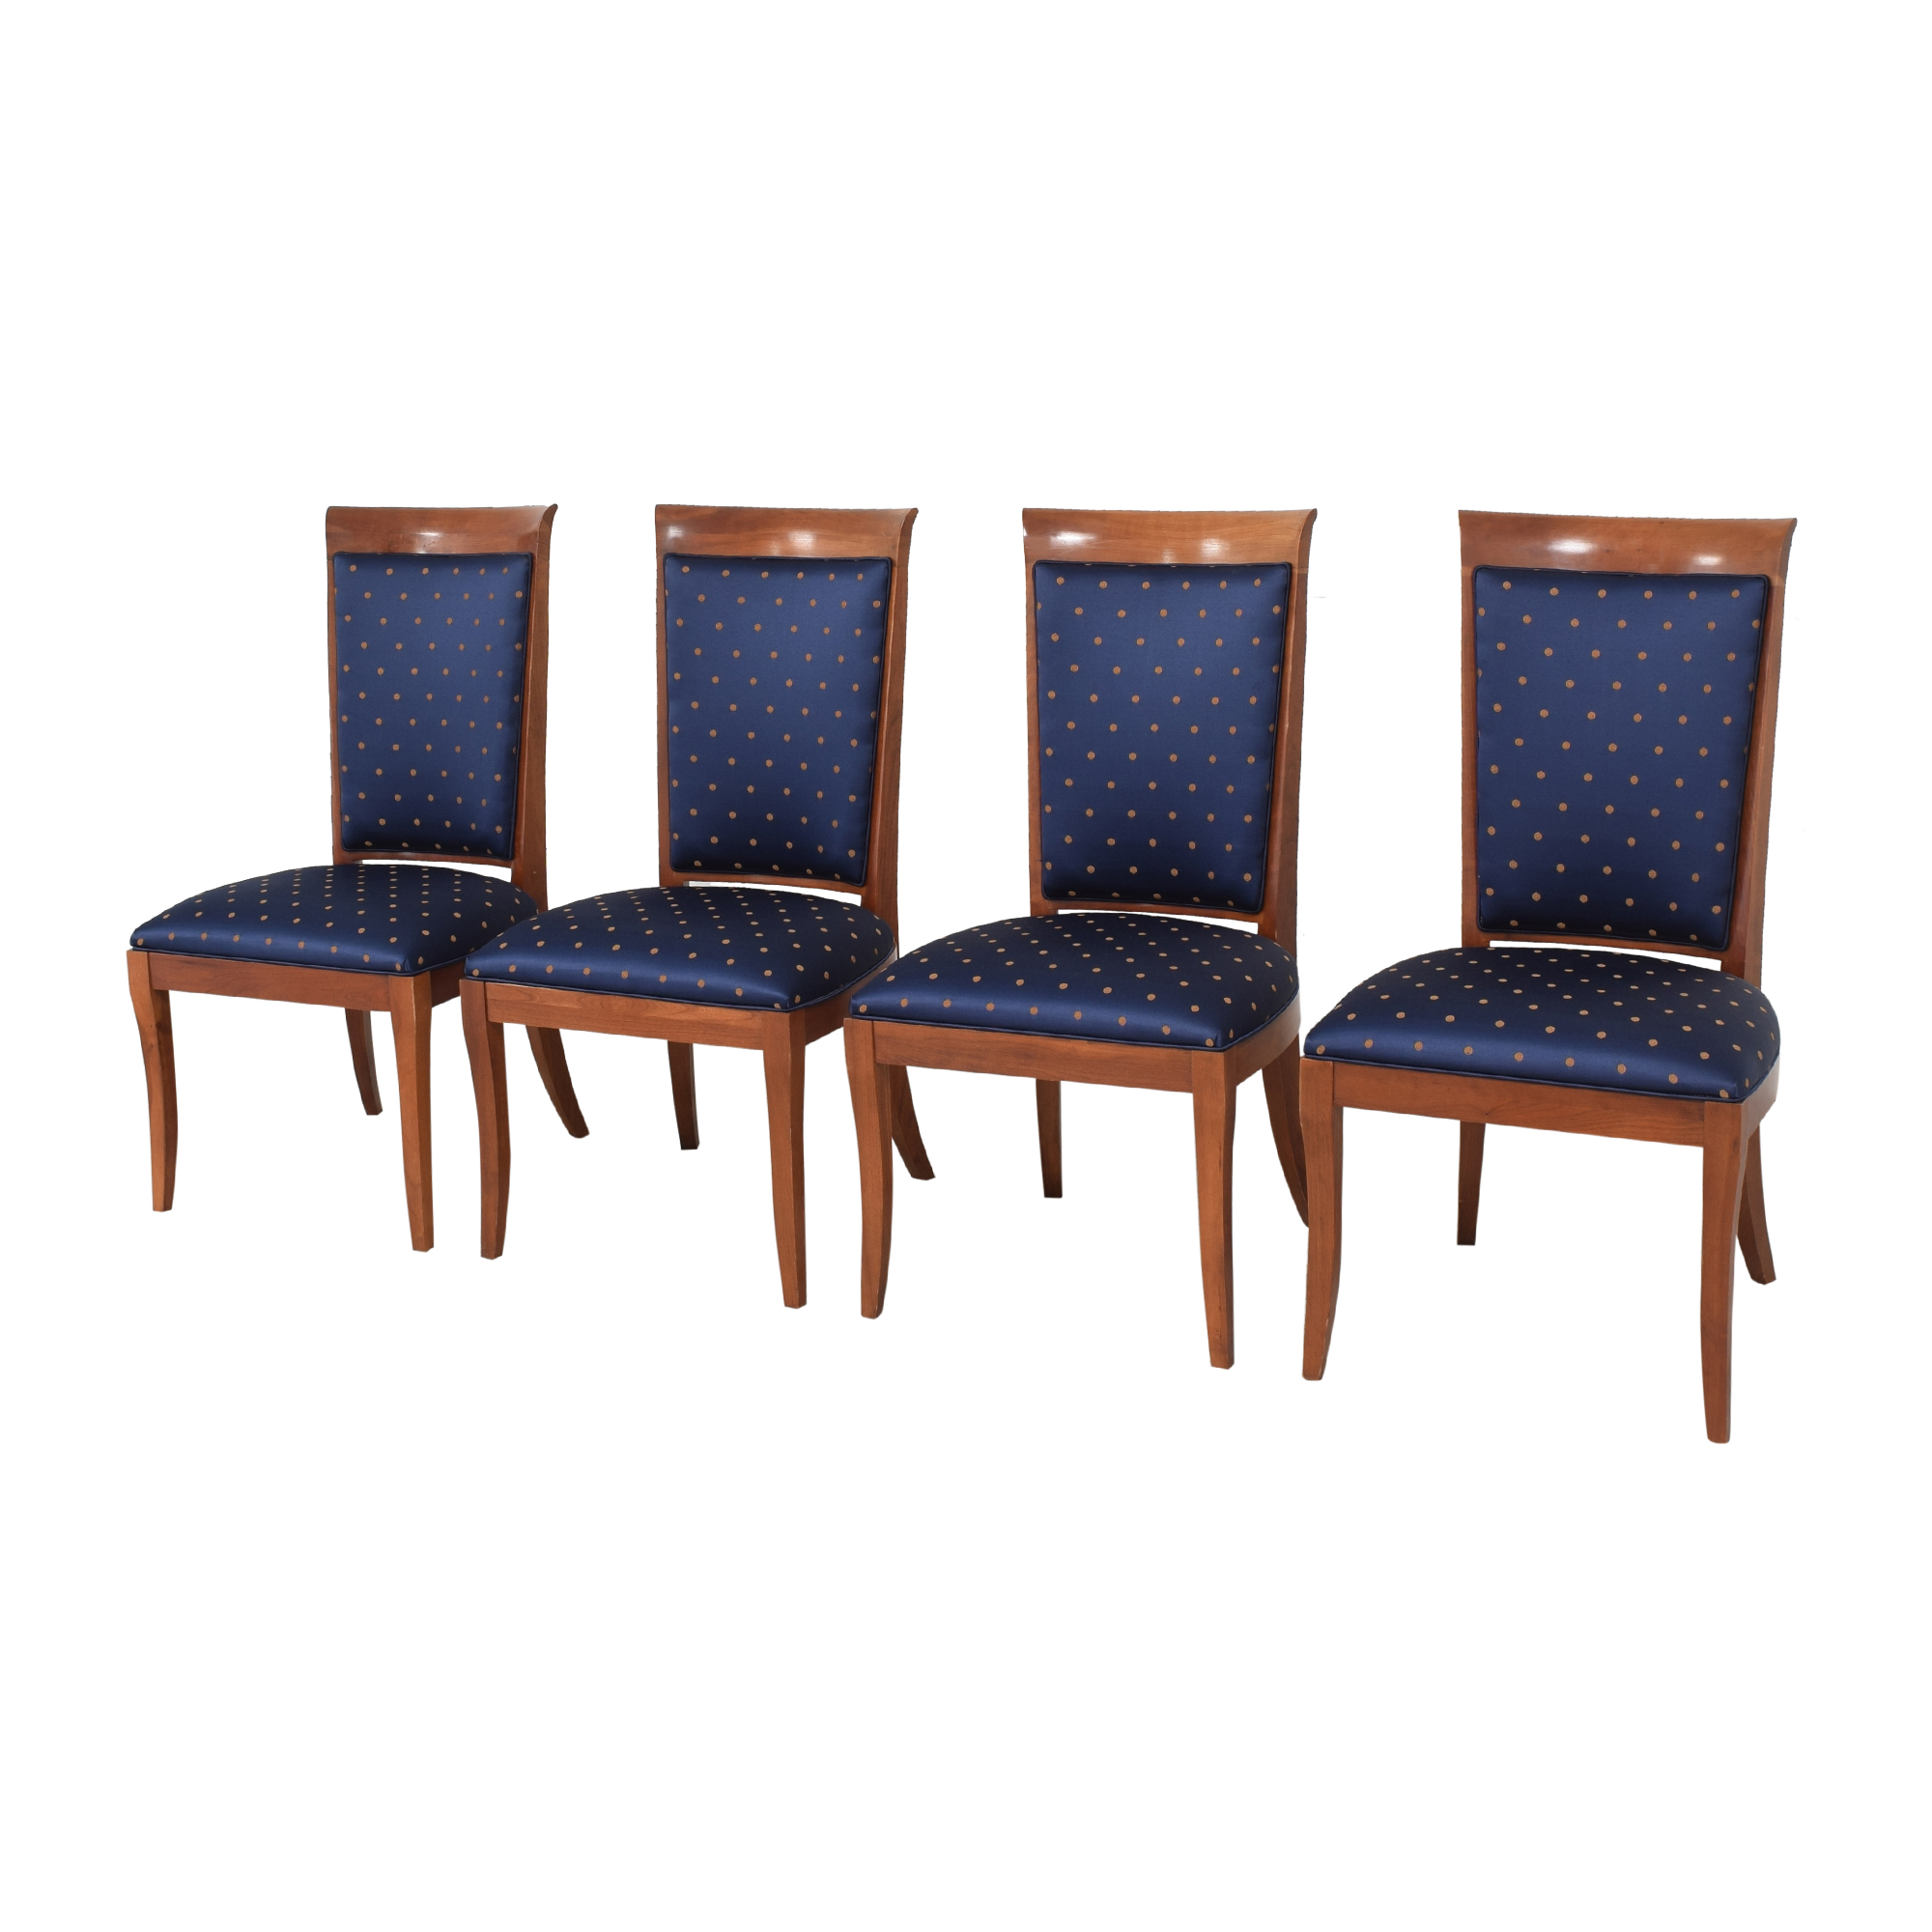 Ethan Allen Medallion Collection Dining Side Chairs / Chairs